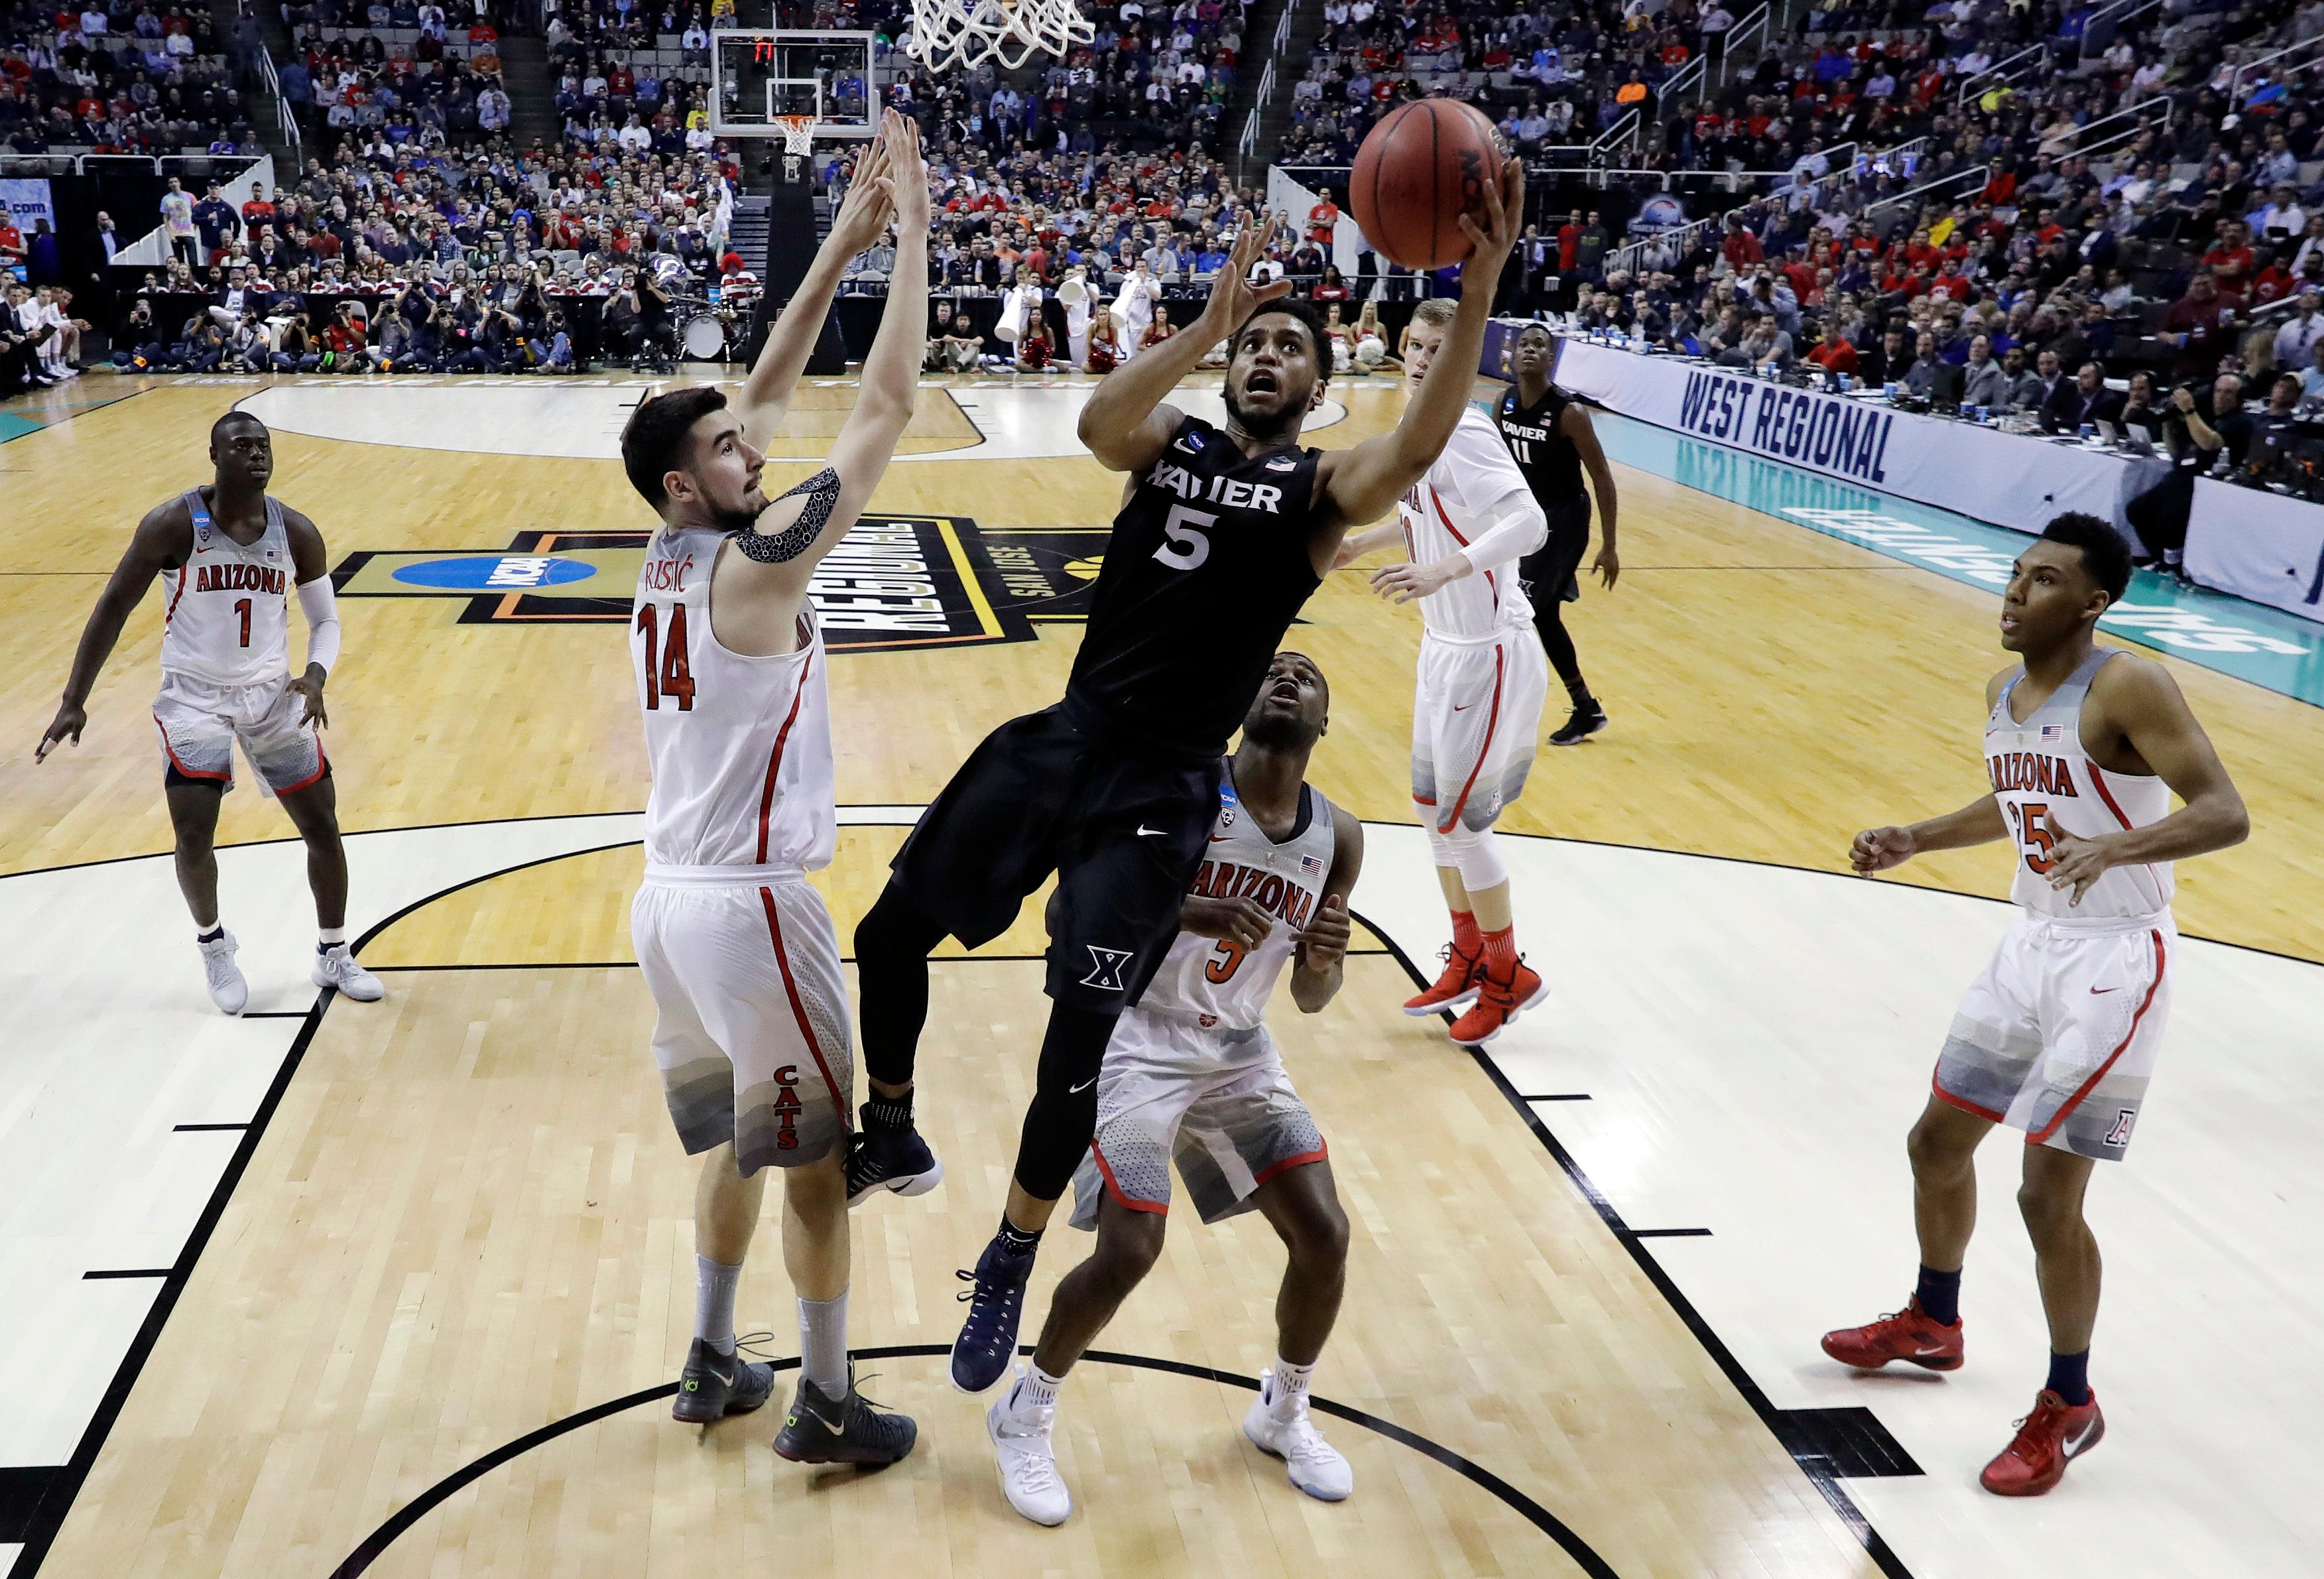 FILE - In this March 23, 2017, file photo, Xavier guard Trevon Bluiett (5) drives to the basket against Arizona during the second half of an NCAA men's college basketball tournament regional semifinal in San Jose, Calif. Big East coaches have given Bluiett first-team all-conference honors each of the last two seasons. Bluiett ranked second in the Big East in scoring (18.5) and 10th in rebounding (5.7) last season while also making 2.5 3-pointers per game. (AP Photo/Tony Avelar, File)